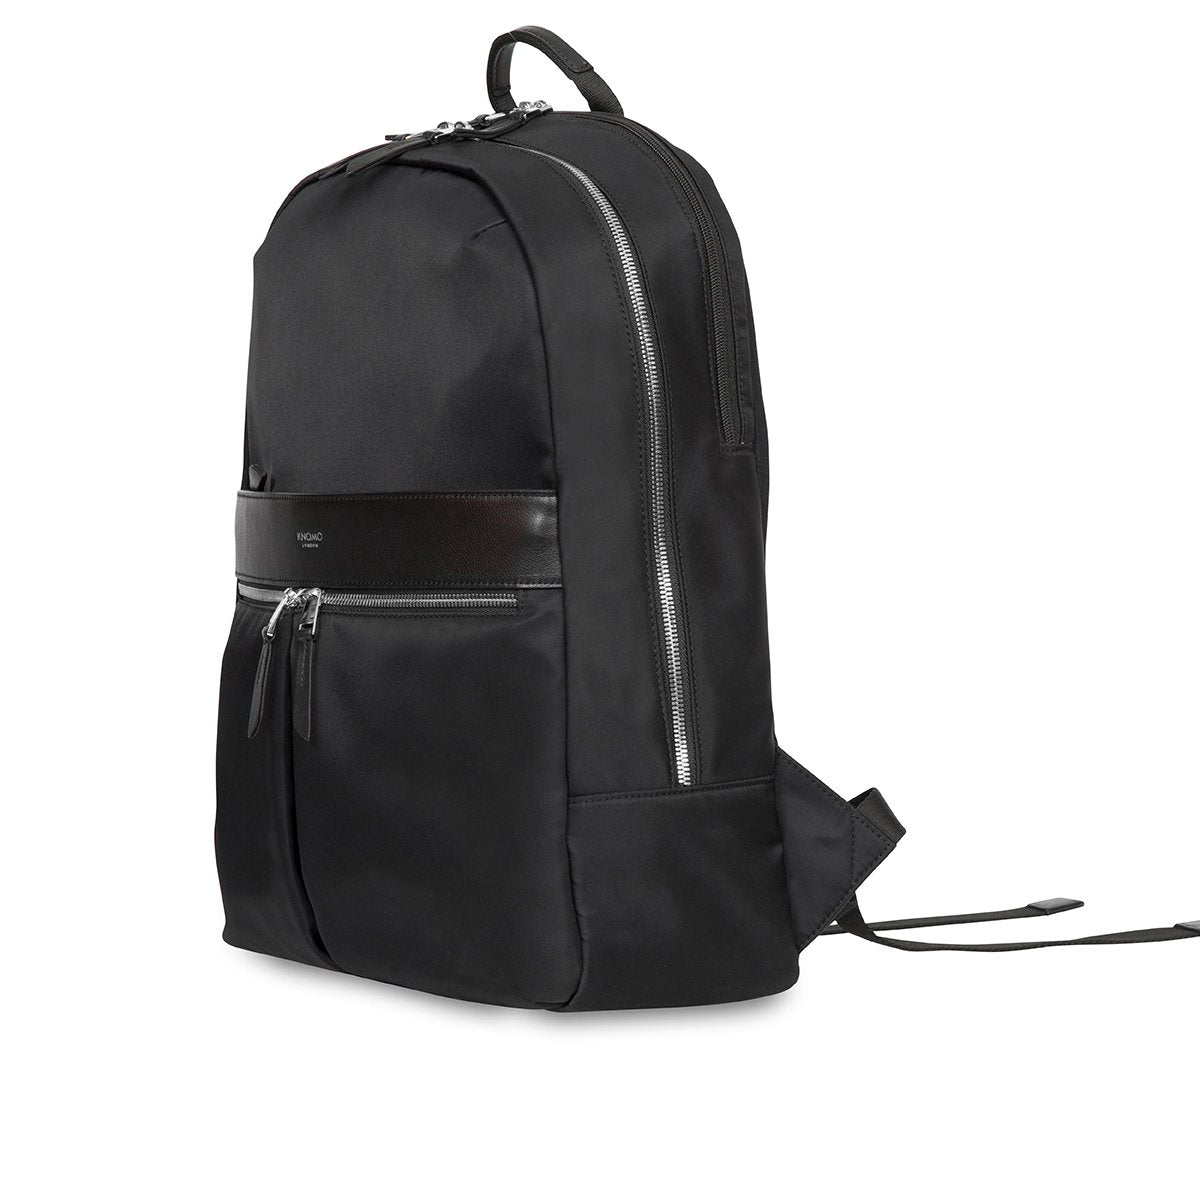 "KNOMO Beaufort Laptop Backpack Three Quarter View 15.6"" -  Black 